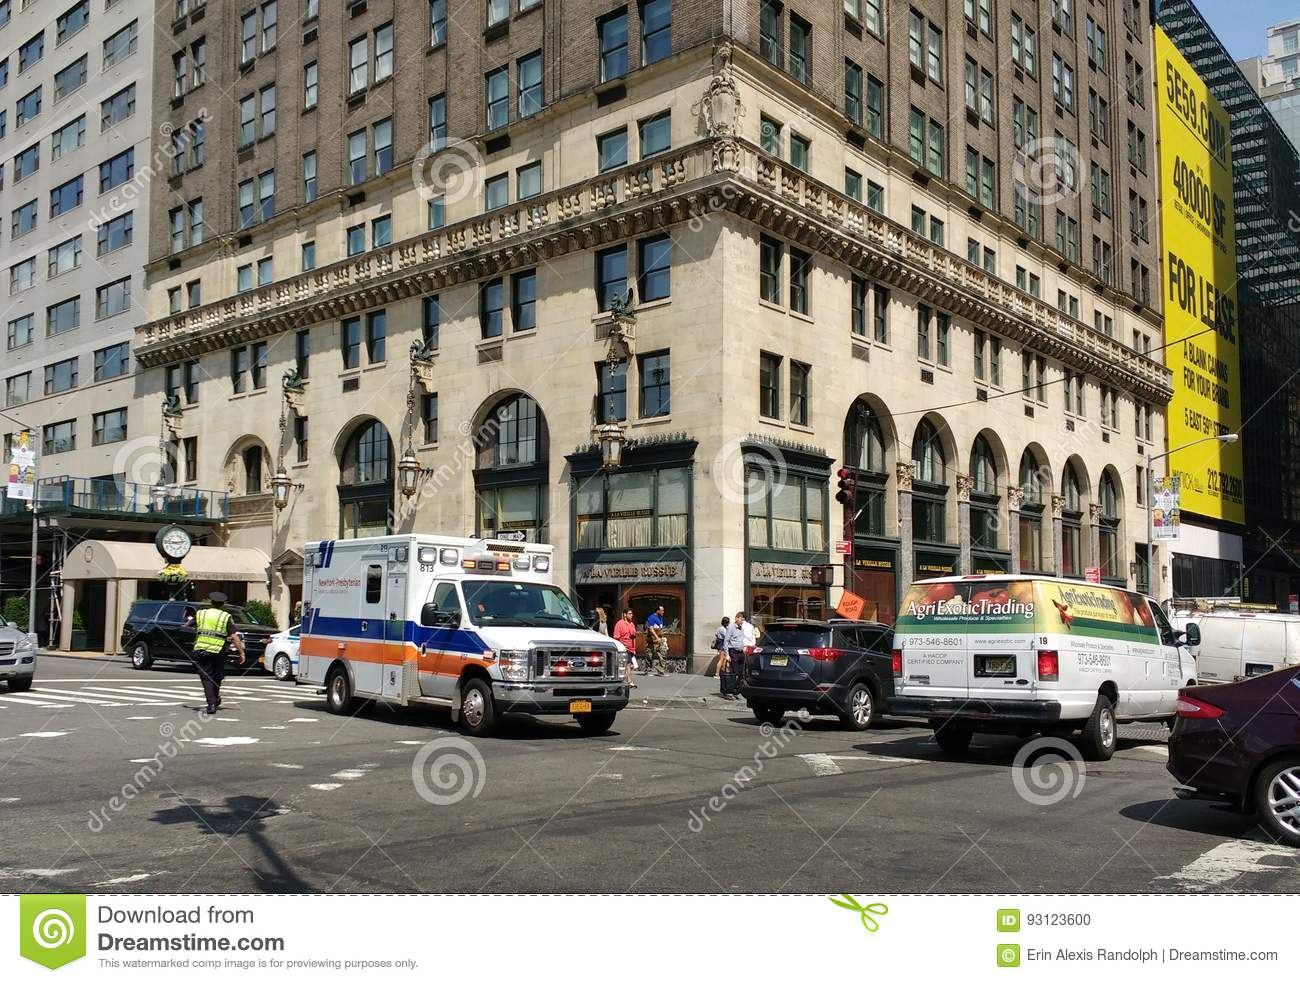 NewYork–Presbyterian Hospital Ambulance, NYPD Traffic Officer, New